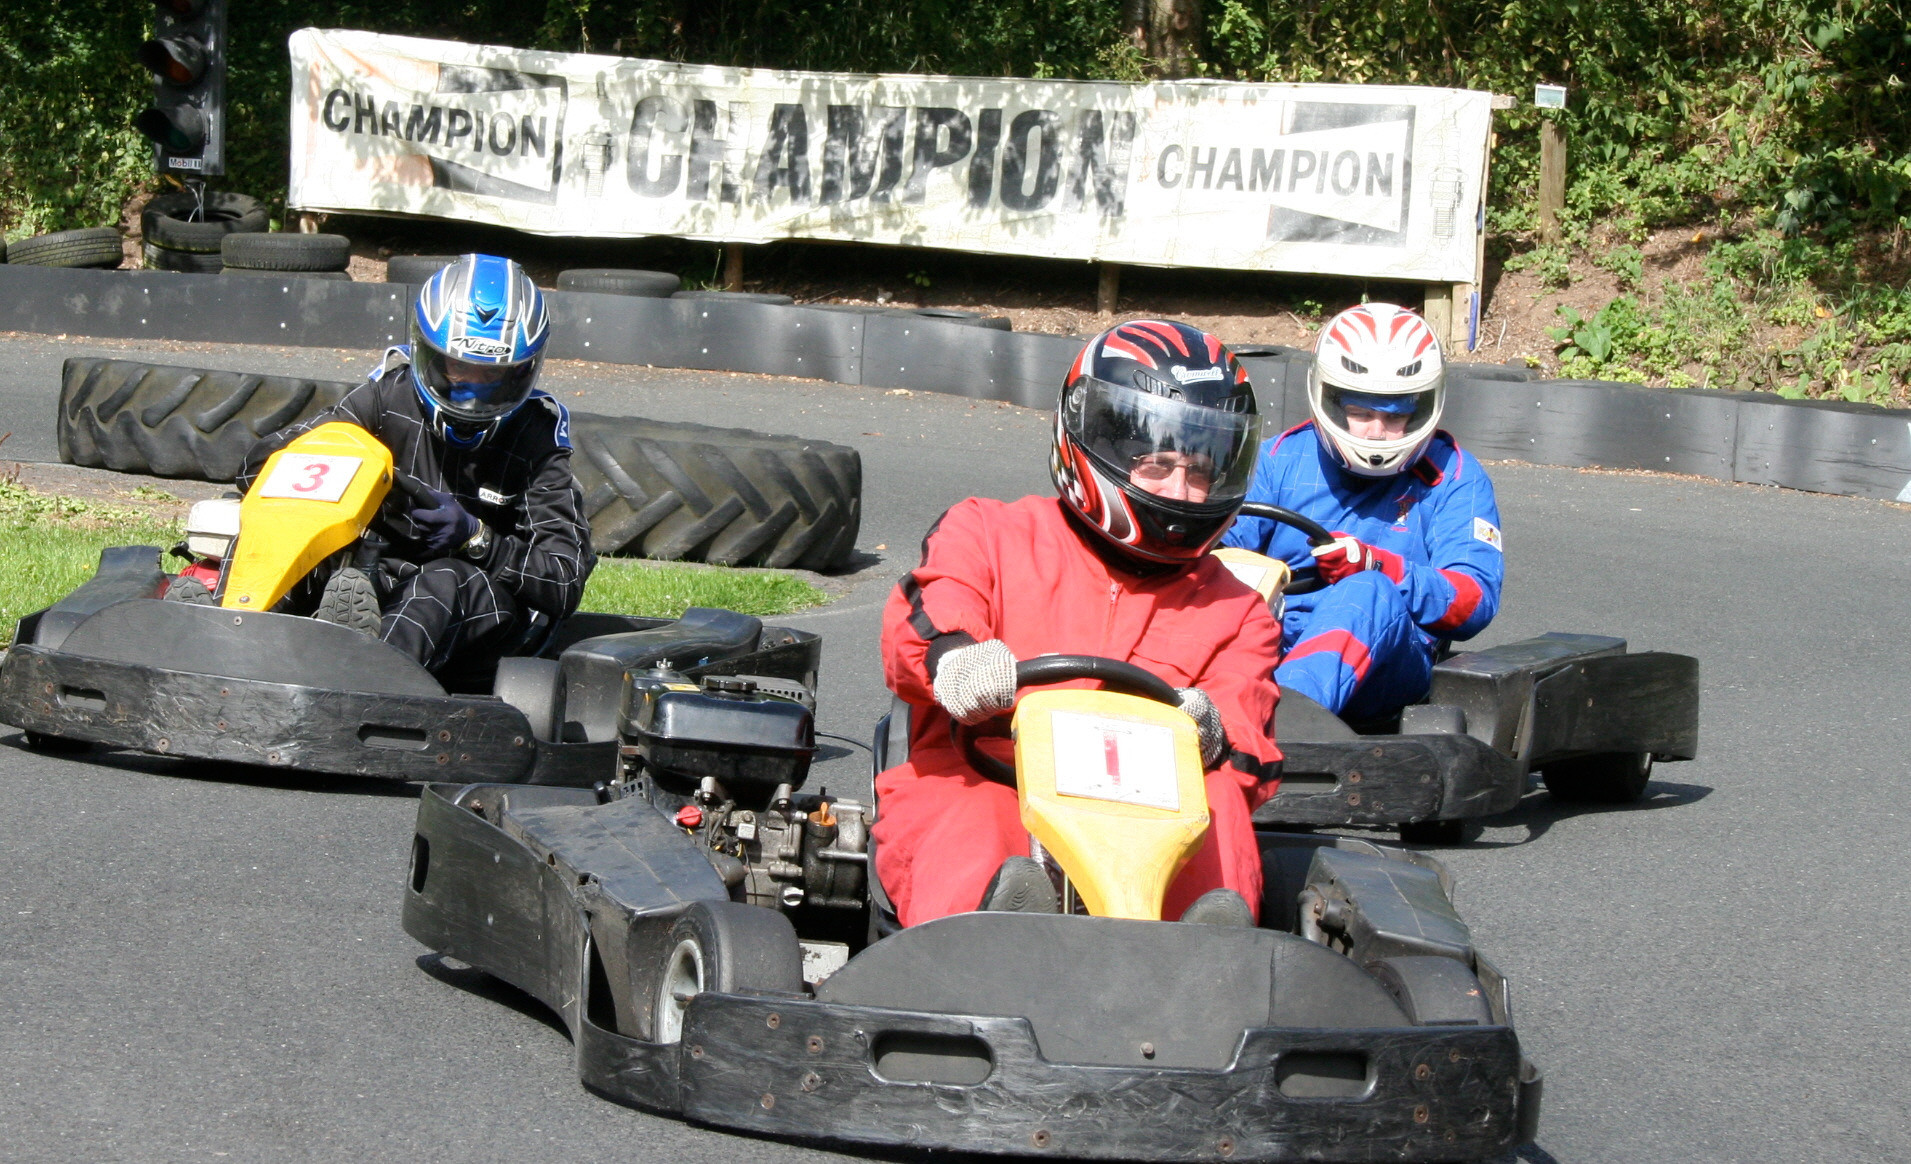 Three Go Karts